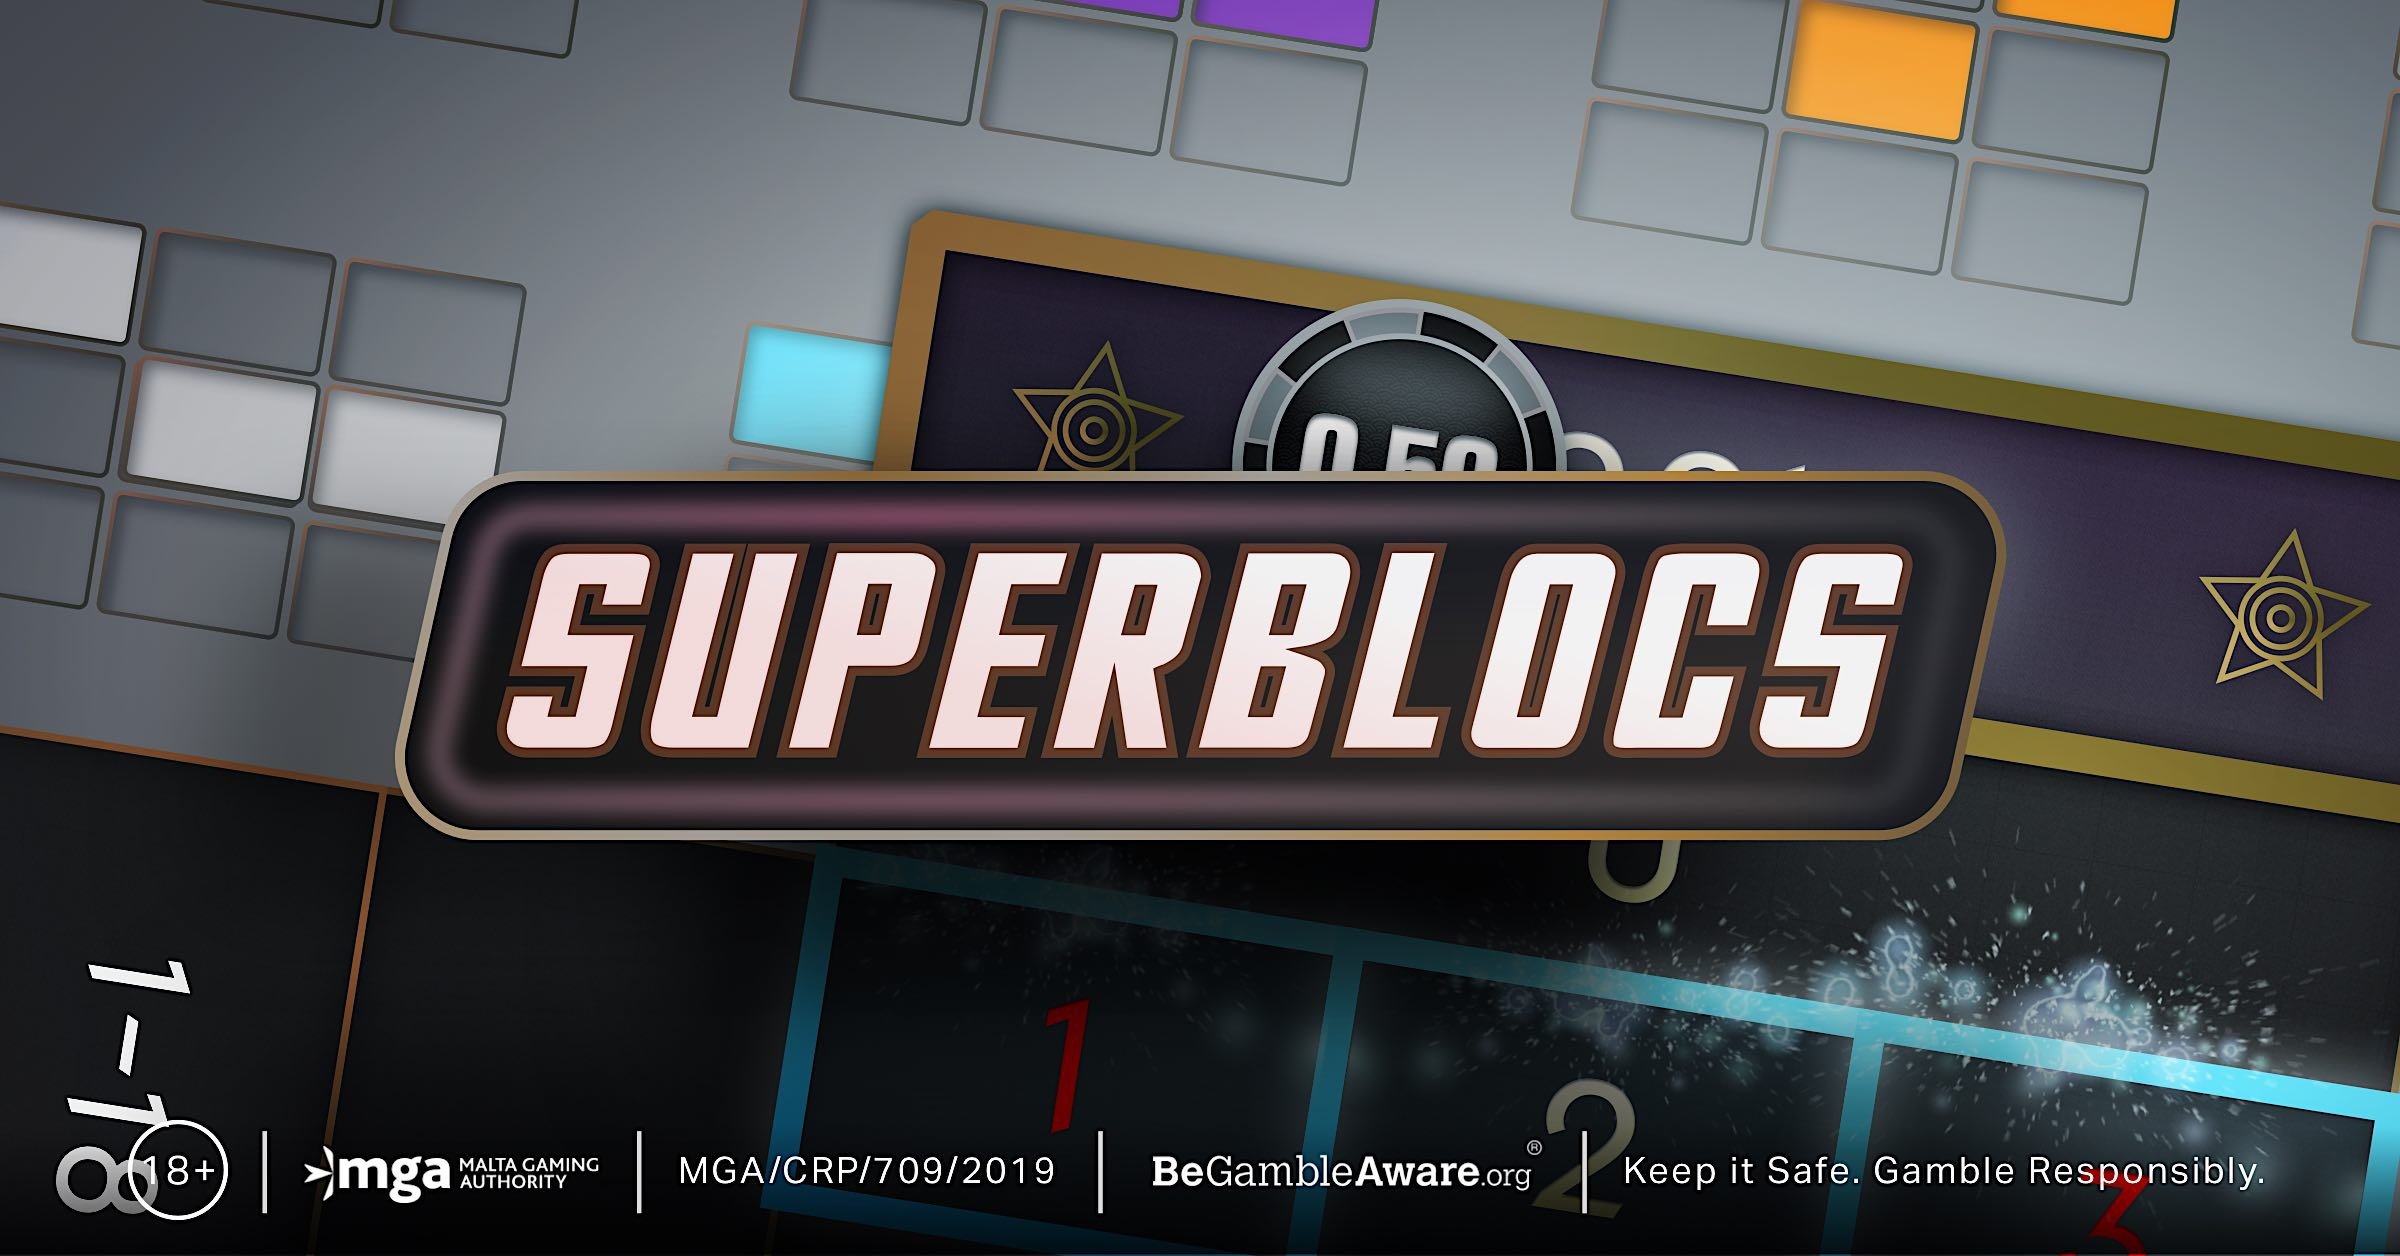 Quik ushers in a sophisticated new age of Roulette with SuperBlocs release